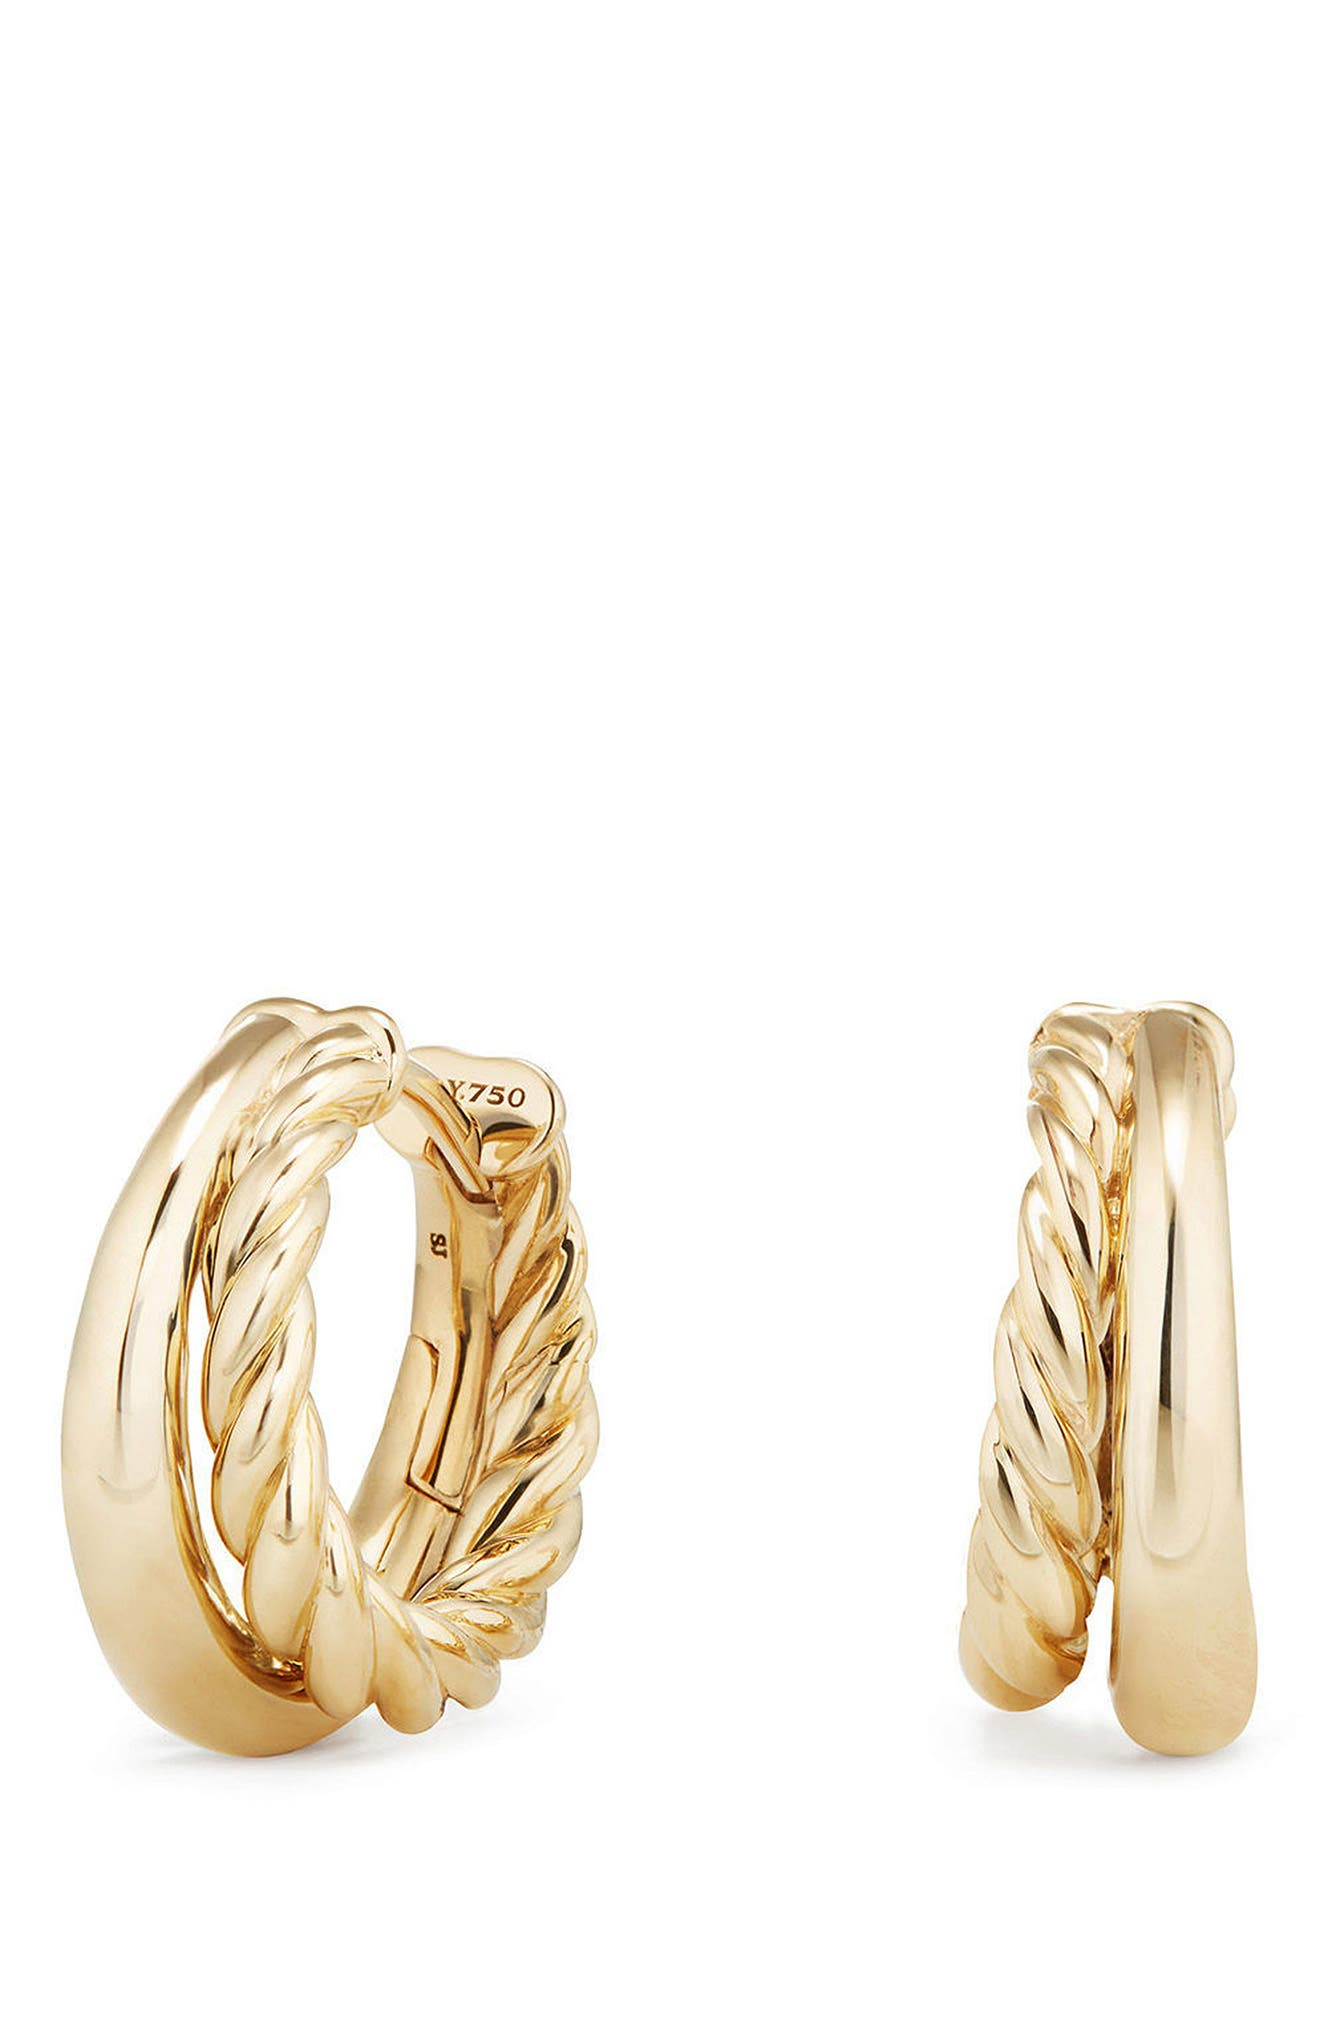 Pure Form Hoop Earrings in 18K Gold, 12mm,                             Main thumbnail 1, color,                             YELLOW GOLD